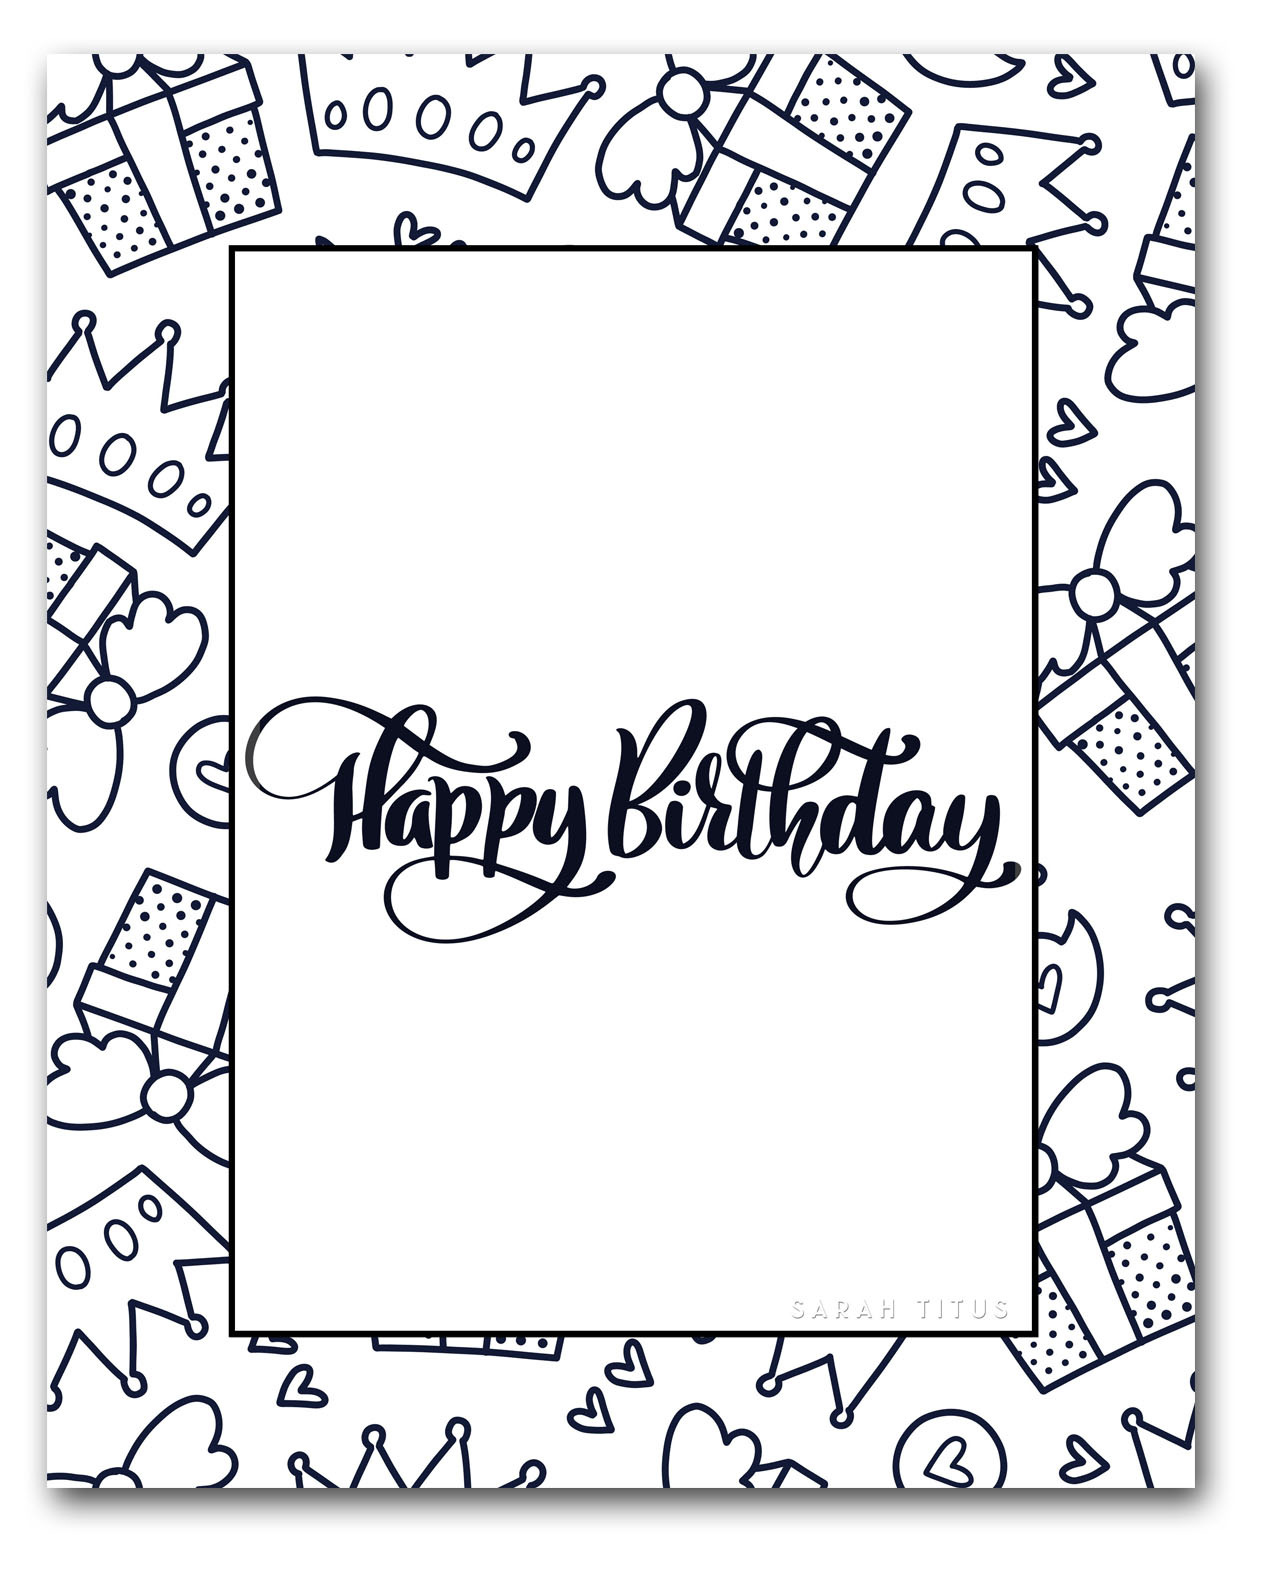 Happy Birthday Coloring Pages To Print Coloring Pages Coloring Pages Free Happy Birthday Printable